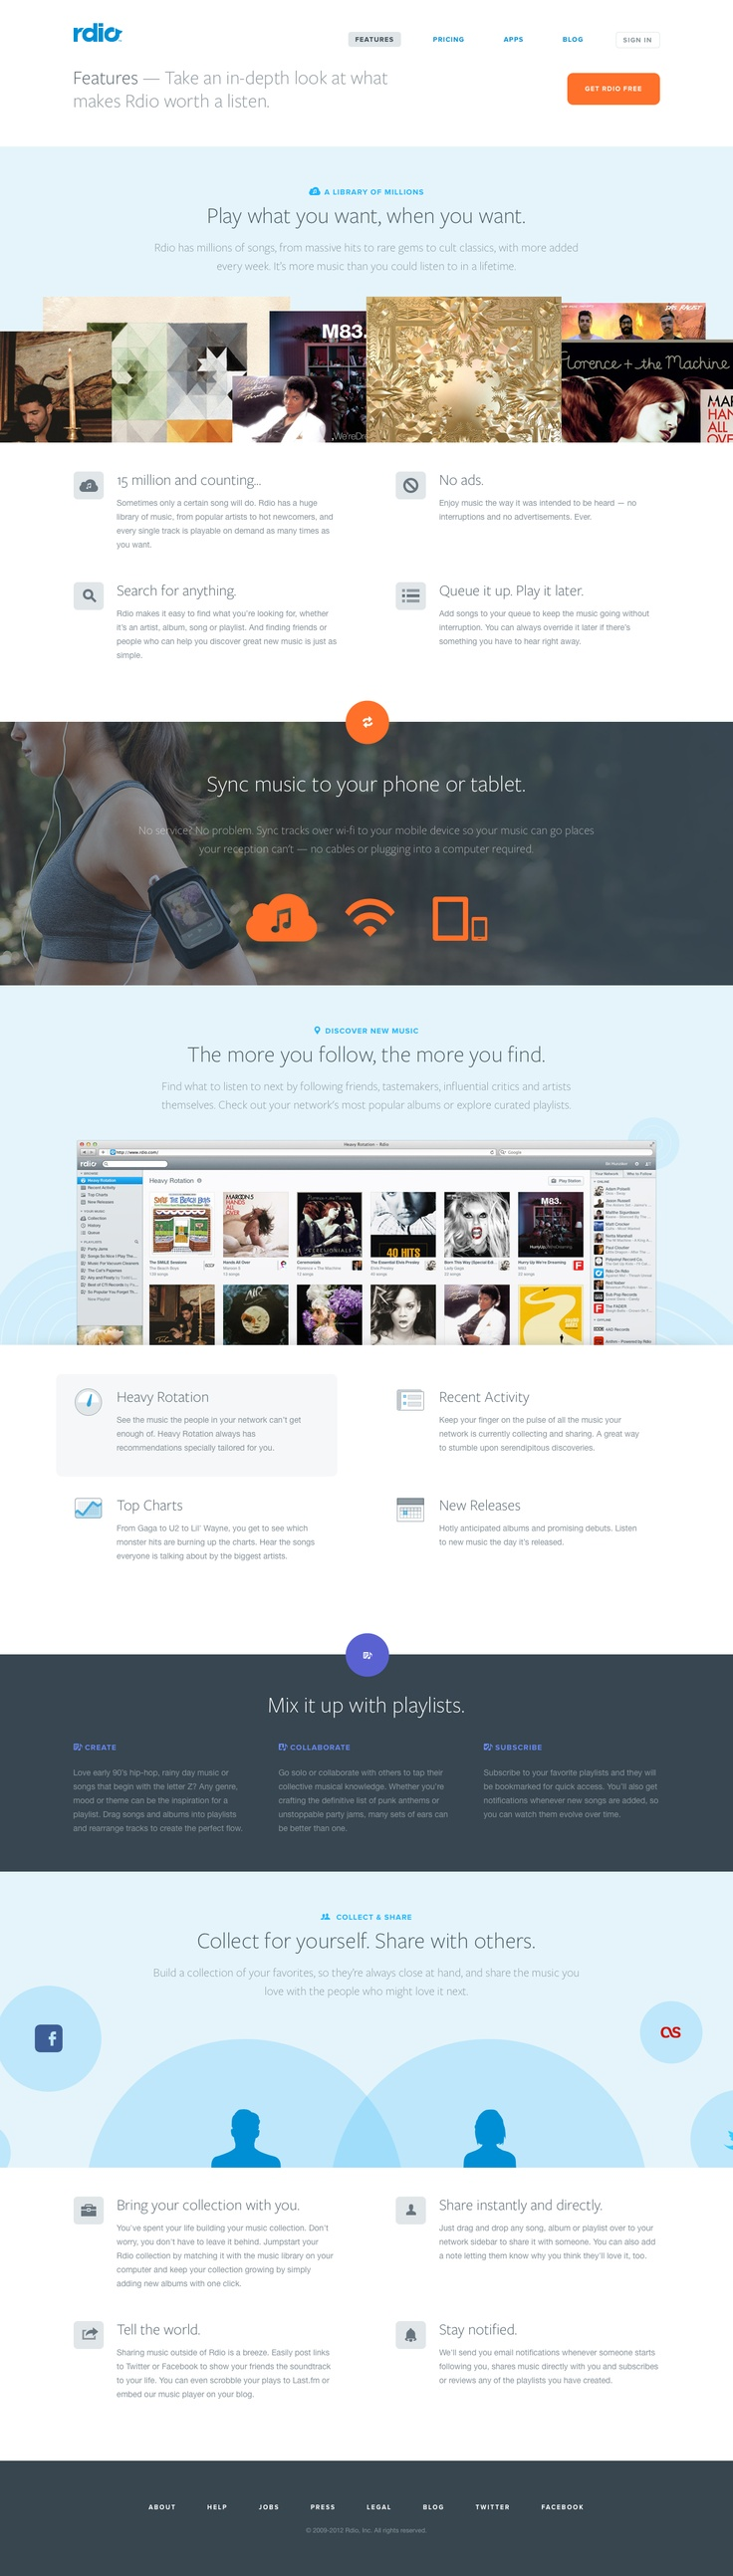 Rdio - Features - Nice display of a lot of information on one page.